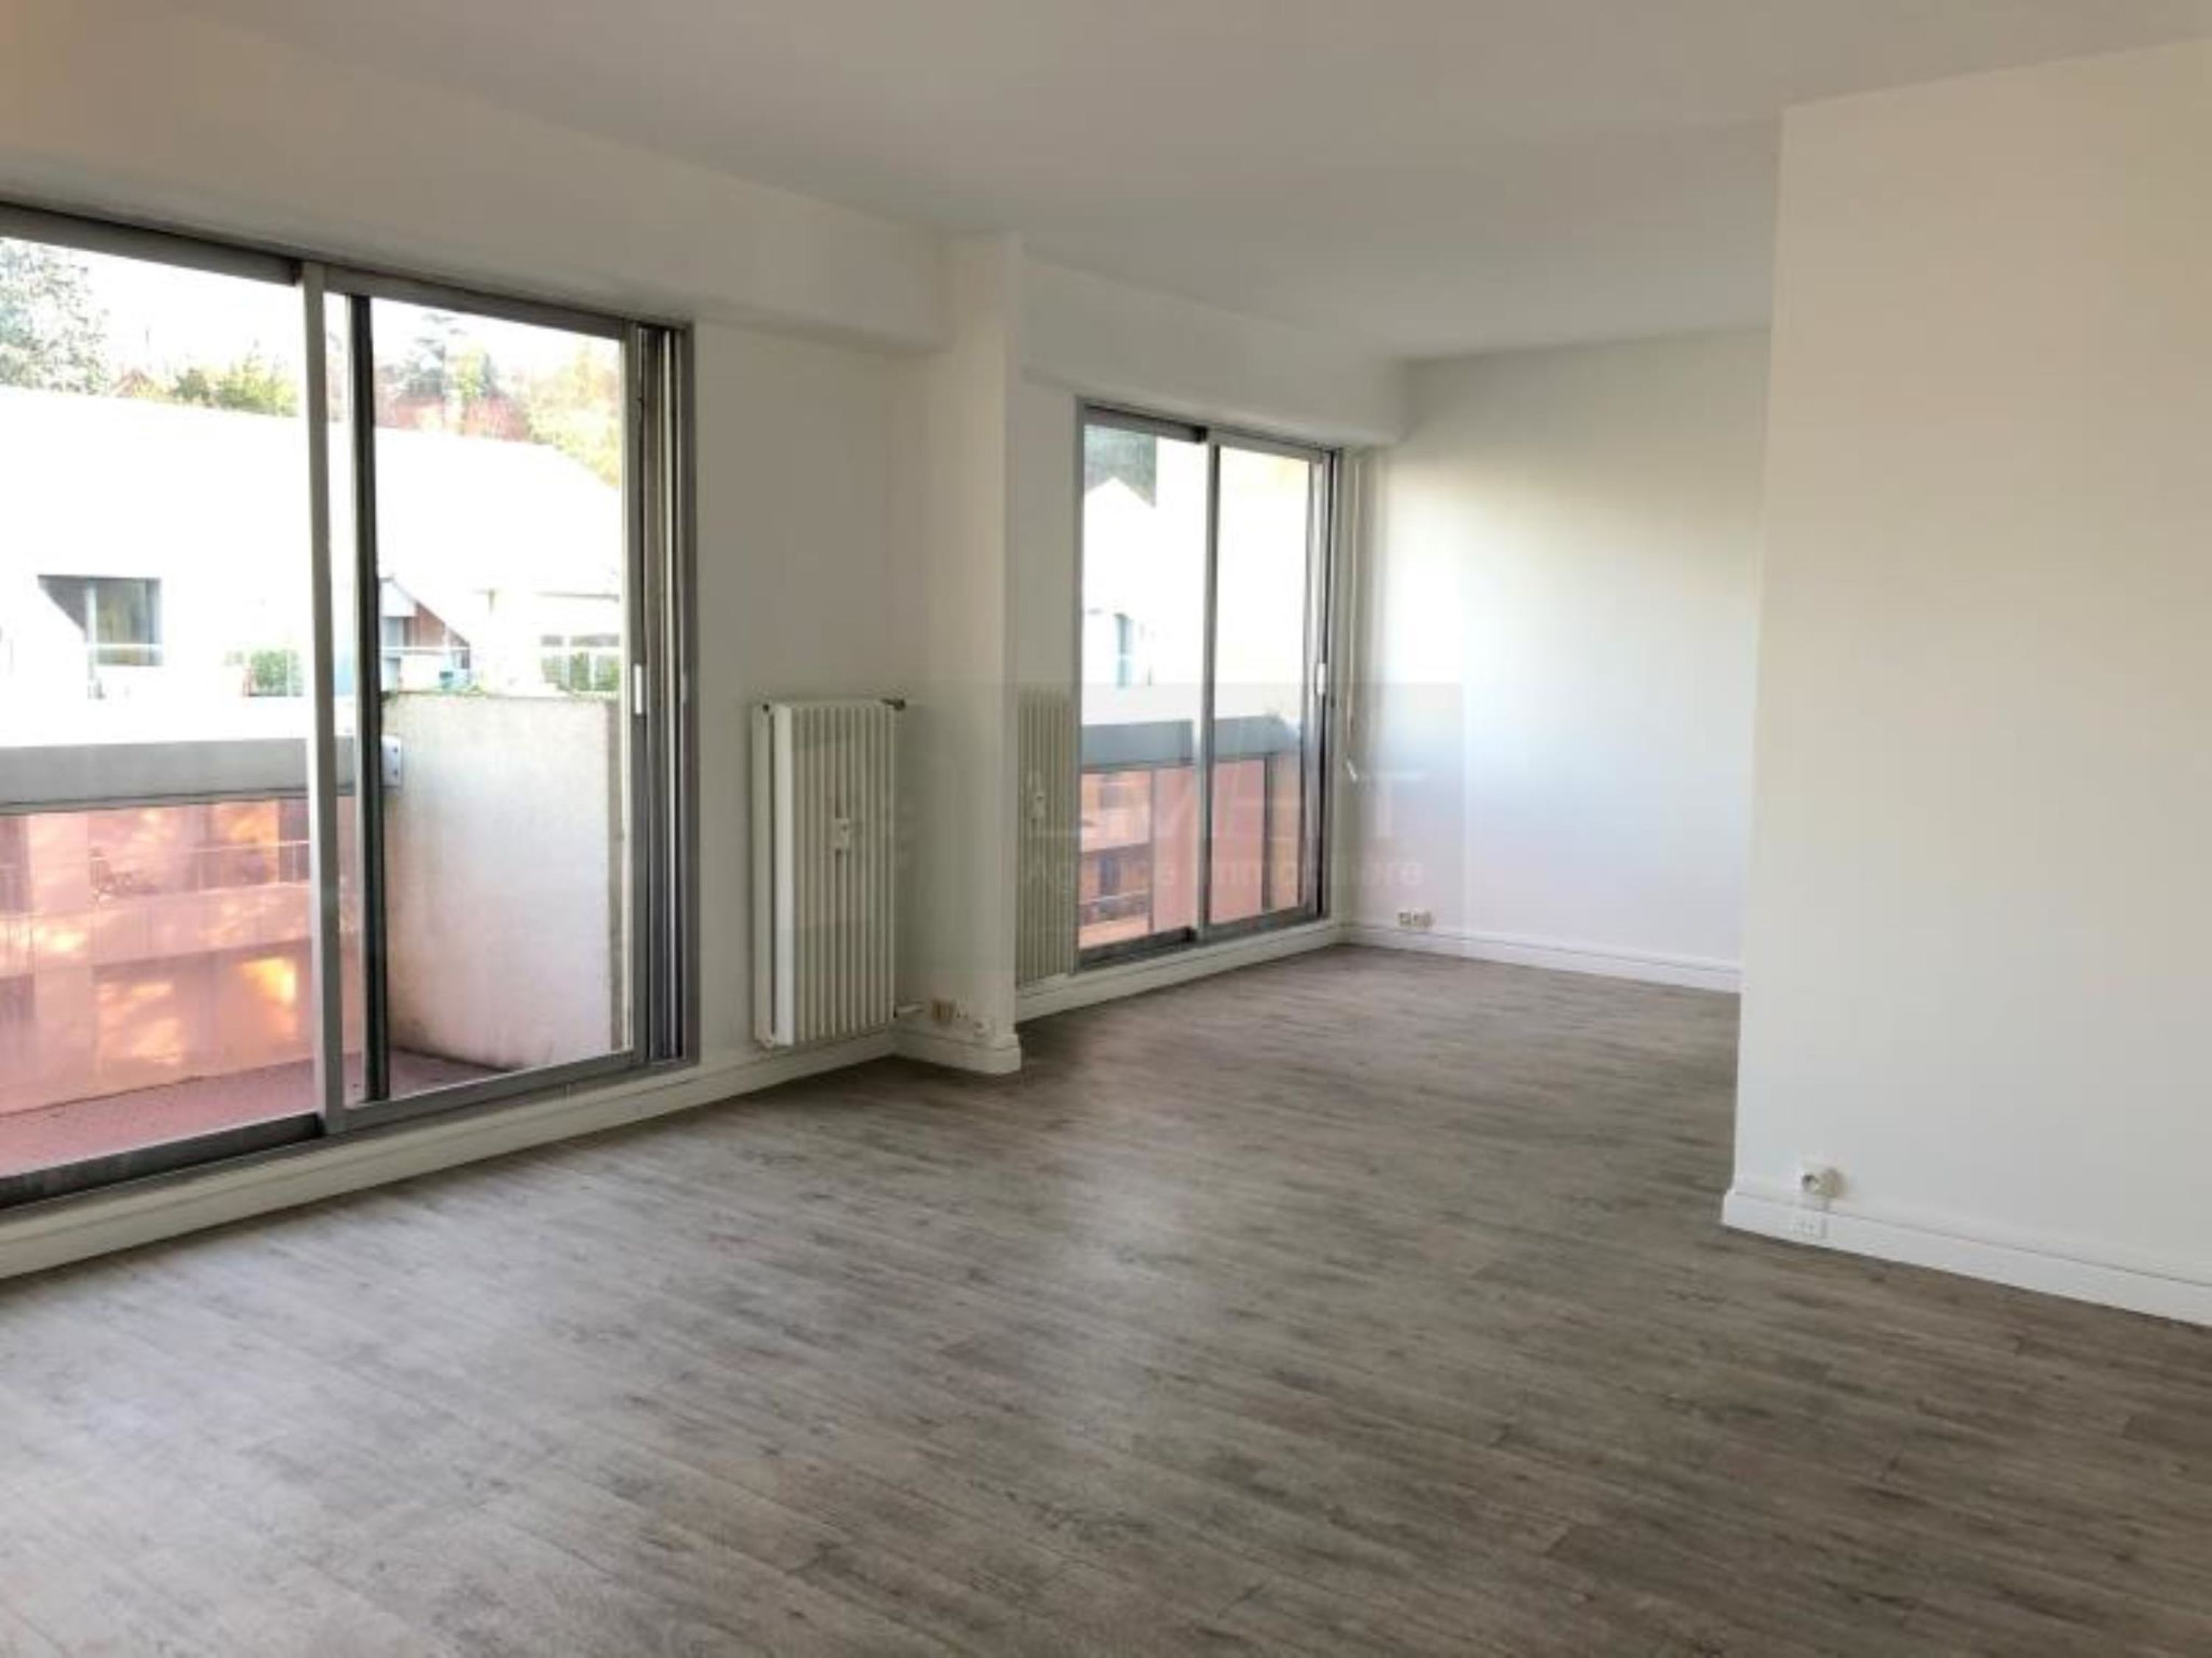 agence immobilière sevres 92 le chesnay 78 achat vente location appartement maison immobilier LMHT ANF DYQJJGVN